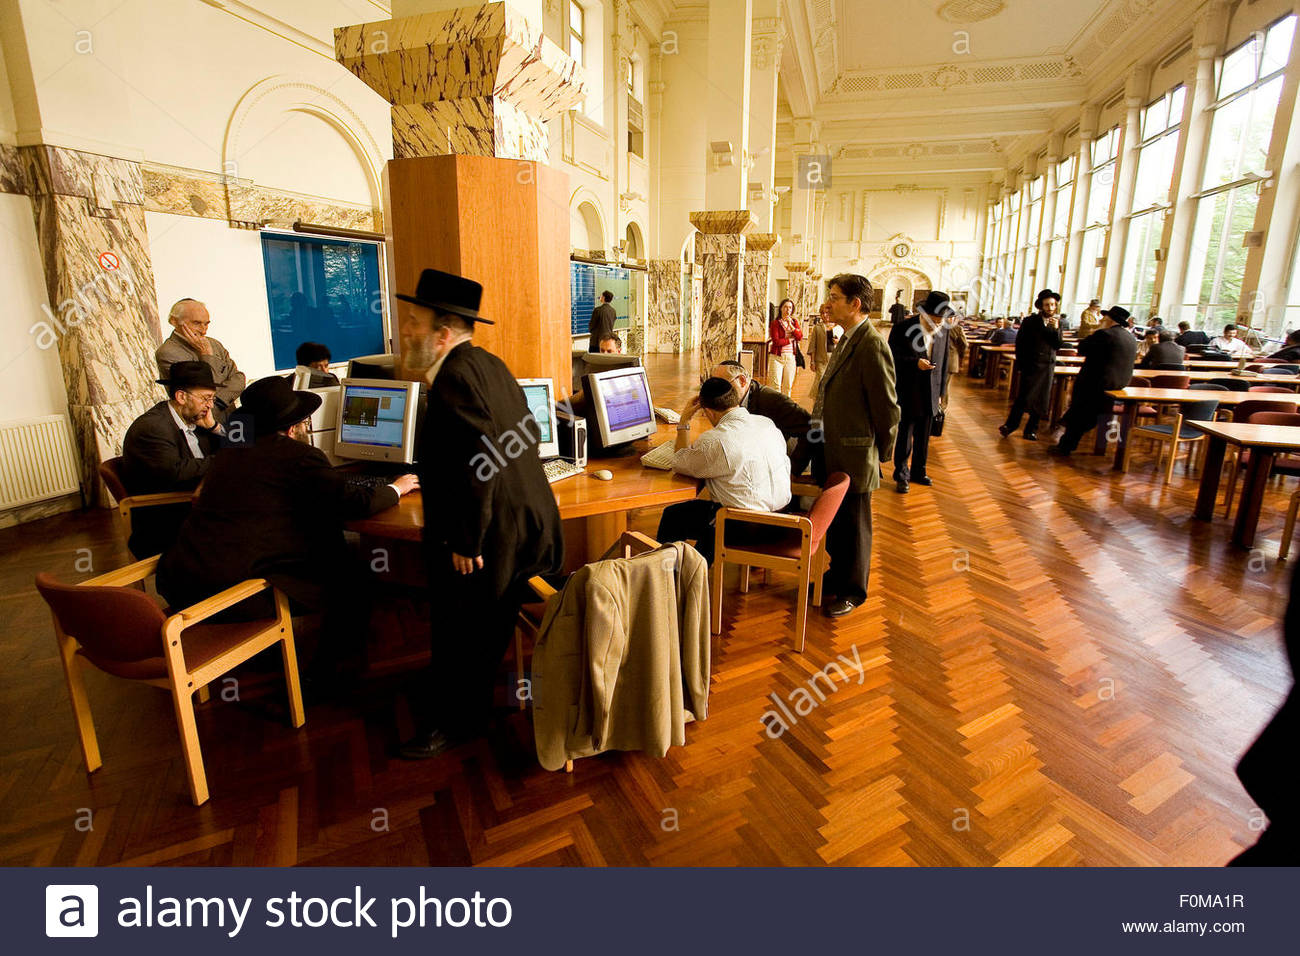 Transation hall, Diamant club Van Antwerpen, Antwerp is the most important center in the world for negociation of - Stock Image